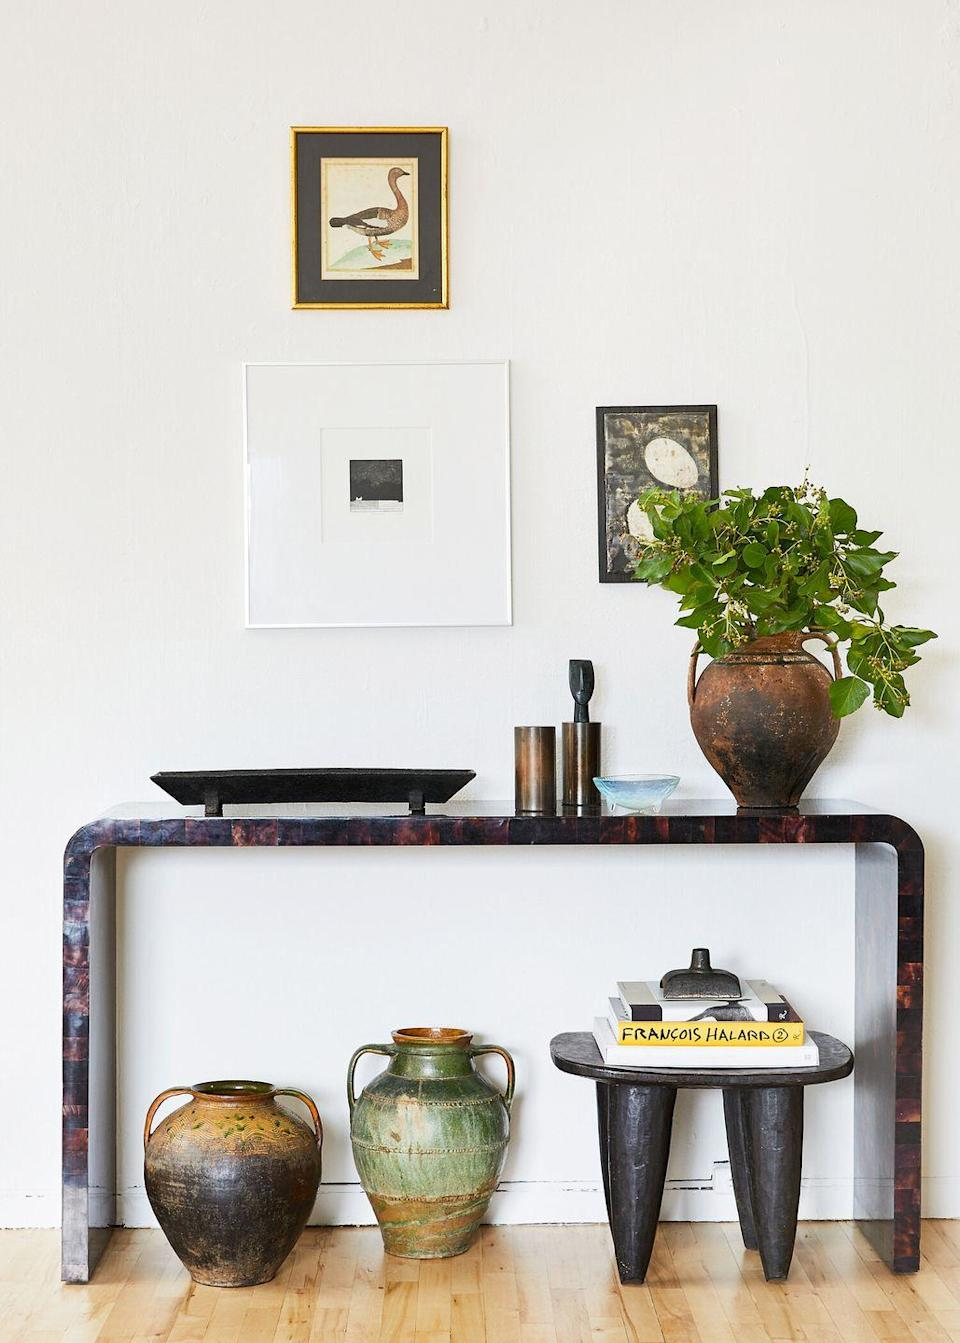 <p>When you don't have a double-tiered console table, you can still create a space for extra books and decorative objects. Get creative and use an accent stool when it's not being used as a seat. </p>